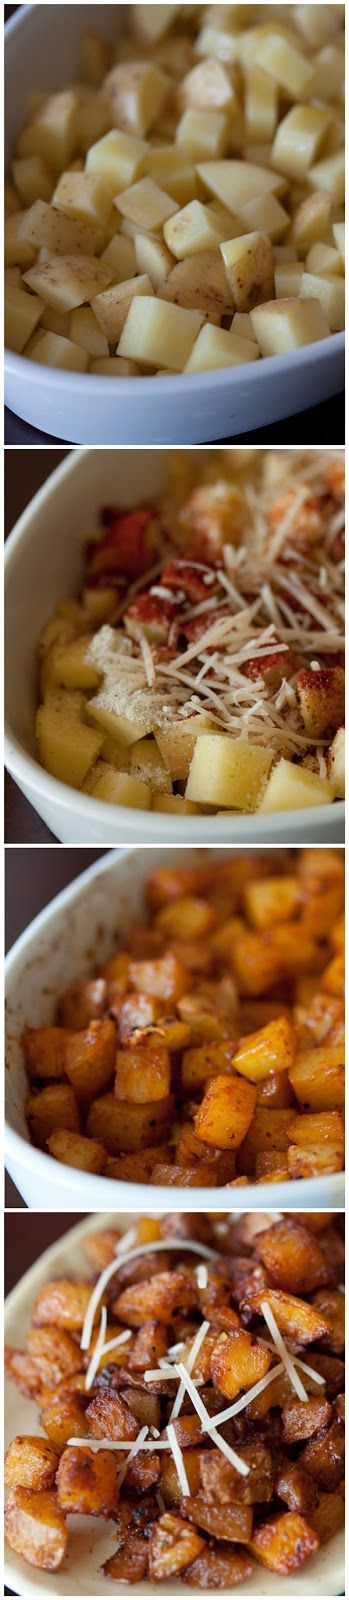 Parmesan Roasted Potatoes Recipe http://sulia.com/my_thoughts/fdf99b1d ...